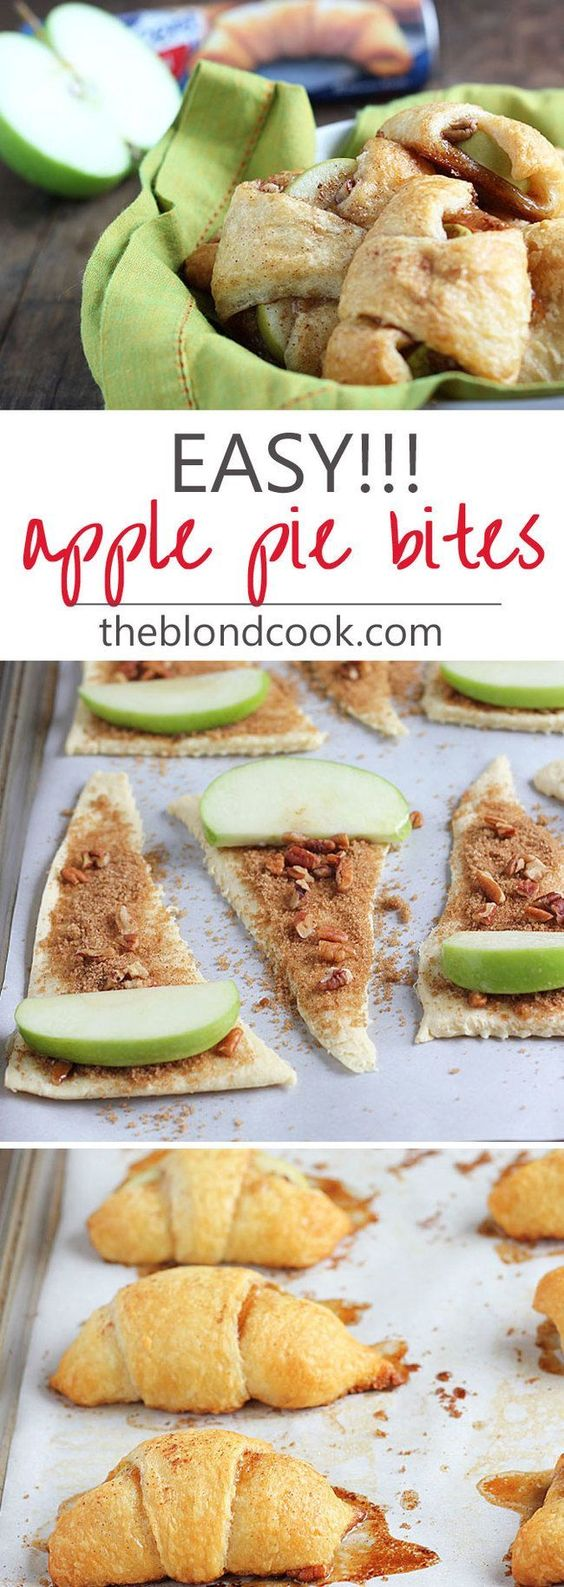 APPLE PIE BITES #apple #applepie #piemilk #easyrecipes #dinnerideas #easydinnerrecipes